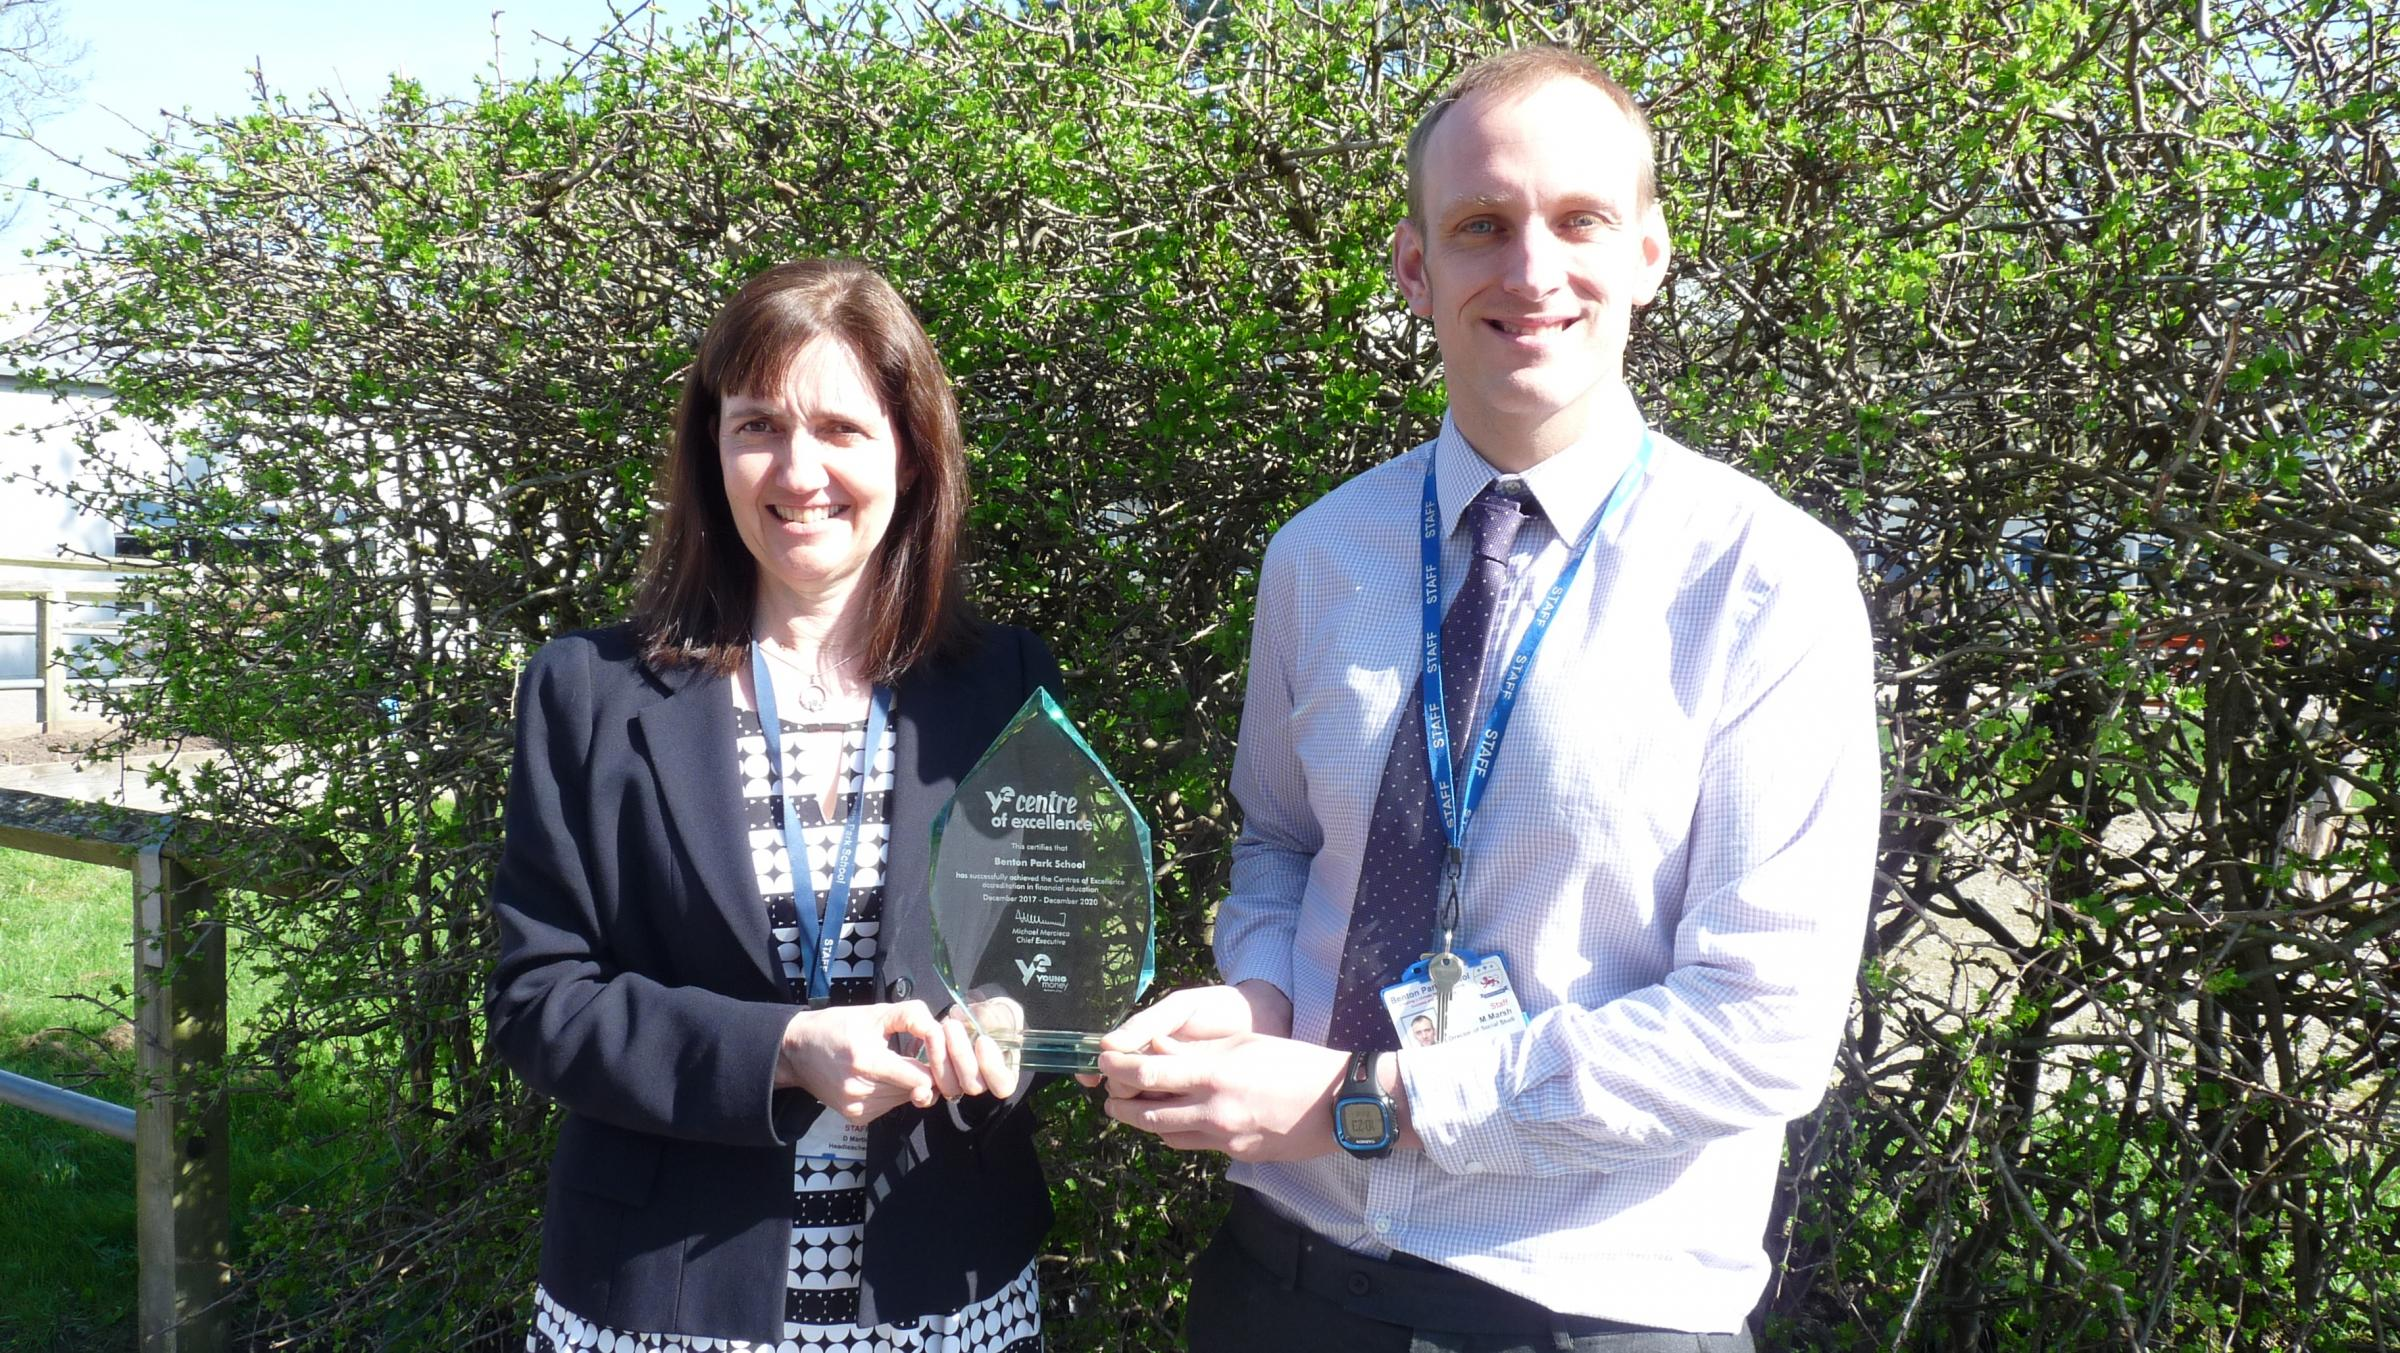 Headteacher Delia Martin and Matthew Marsh, Director of Social Studies and Business Champion, with the Centre of Excellence trophy